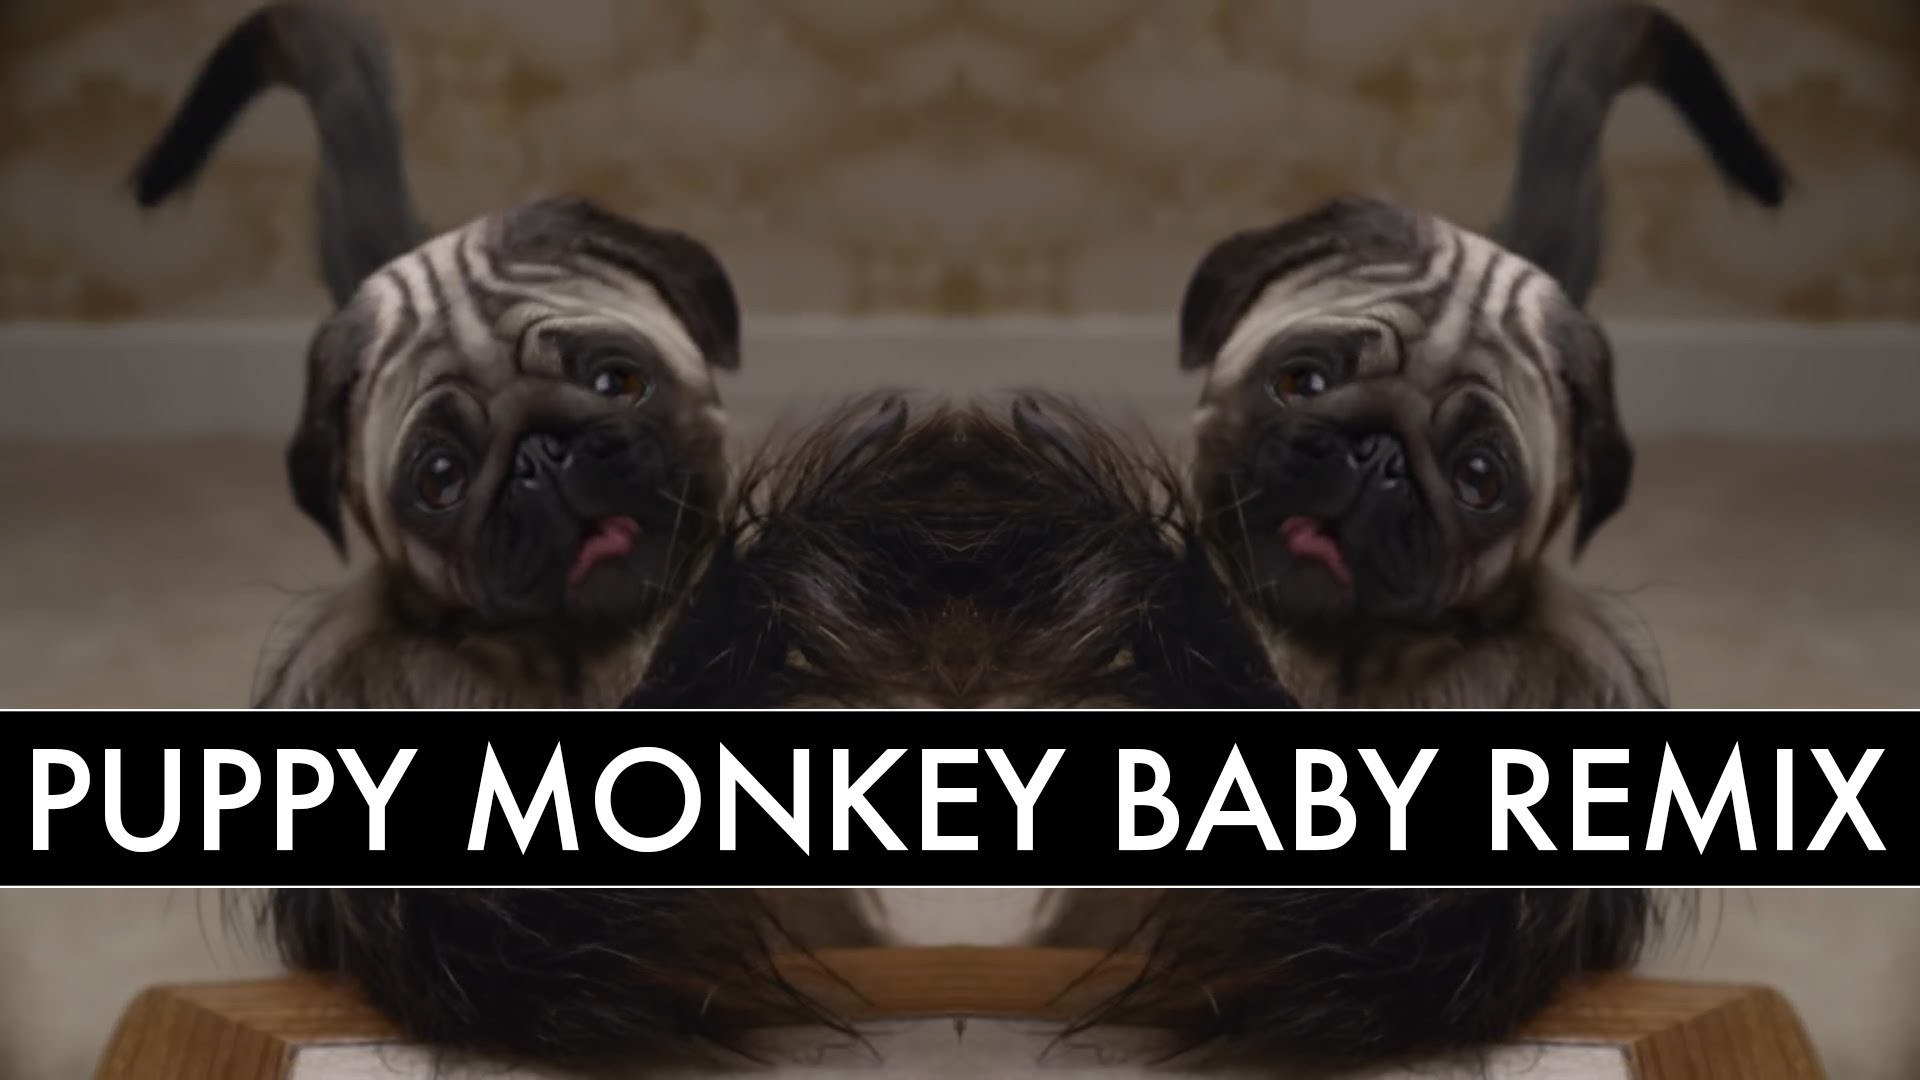 A Remix of the Disturbing 'Puppy Baby Monkey' Mountain Dew Super Bowl 50  Commercial